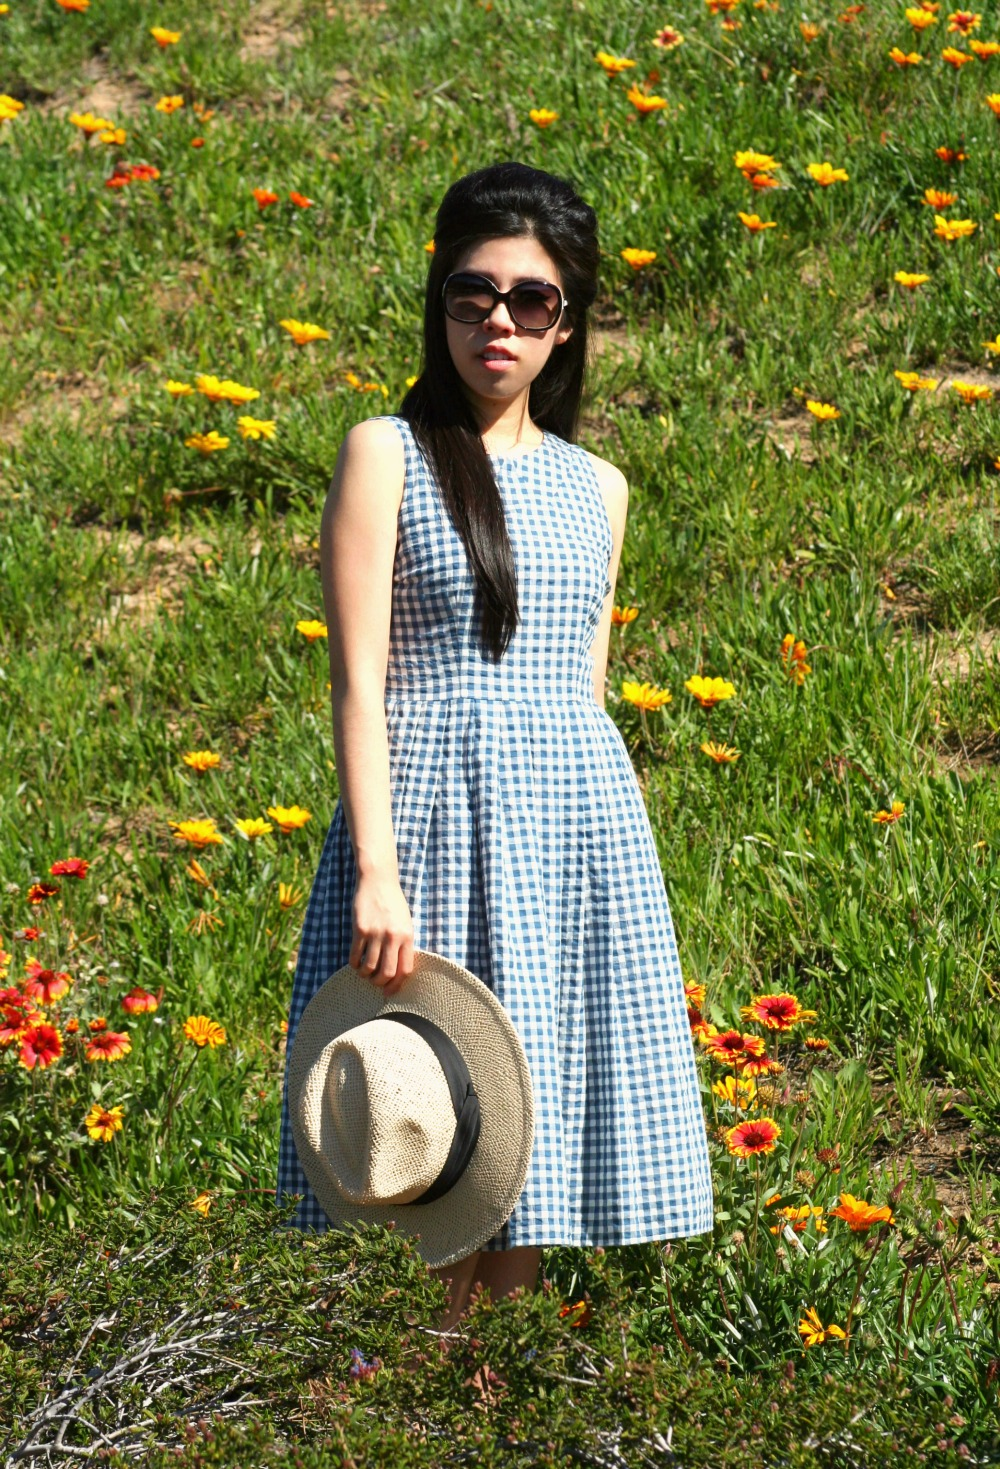 What I Wore Today_Day Dress_Gingham Spring Dress_Easter Dress_Adrienne Nguyen_Invictus